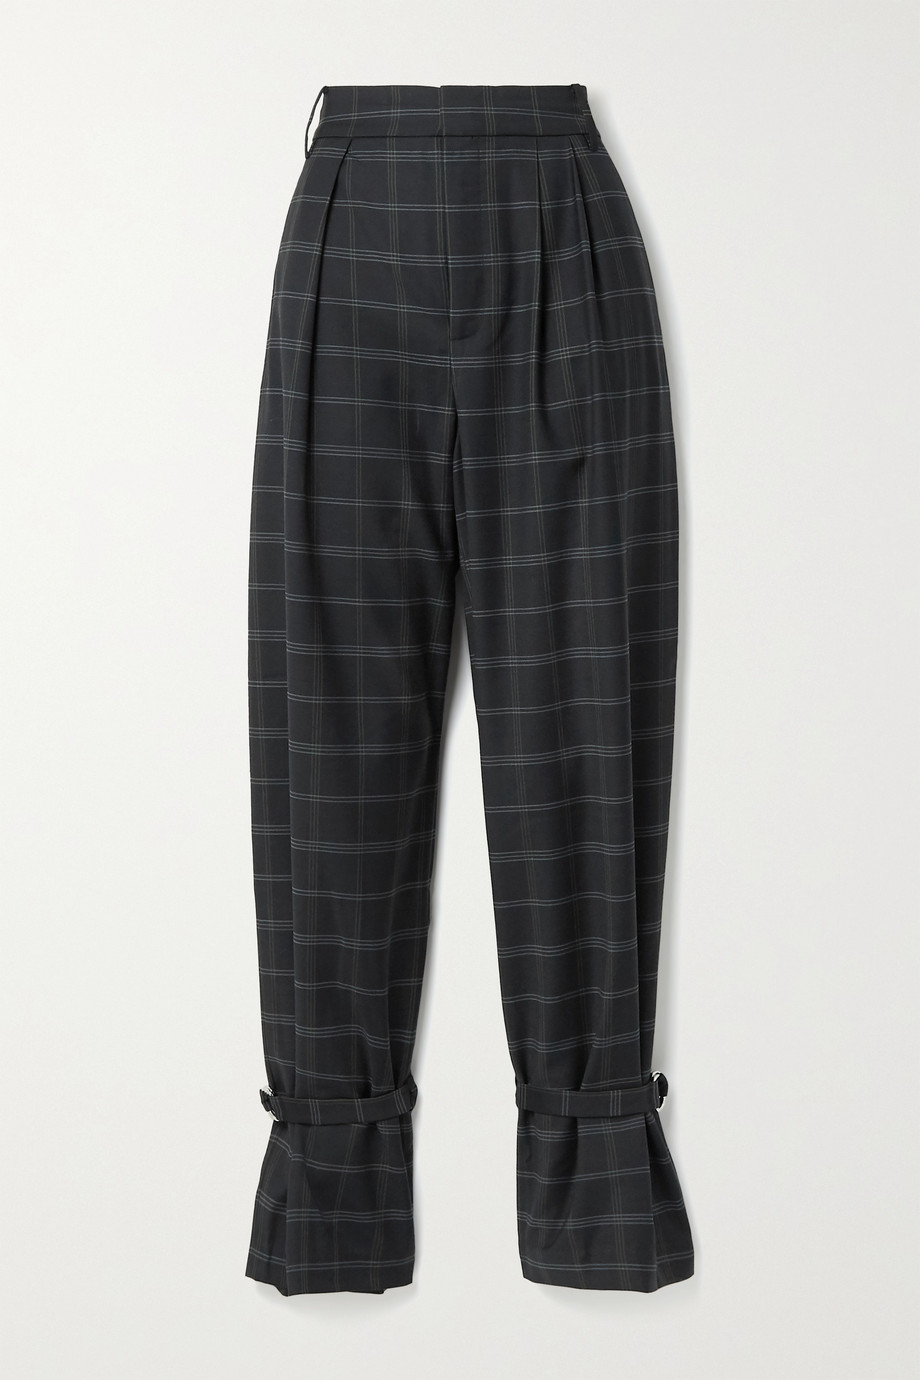 Tibi Finn pleated checked twill tapered pants